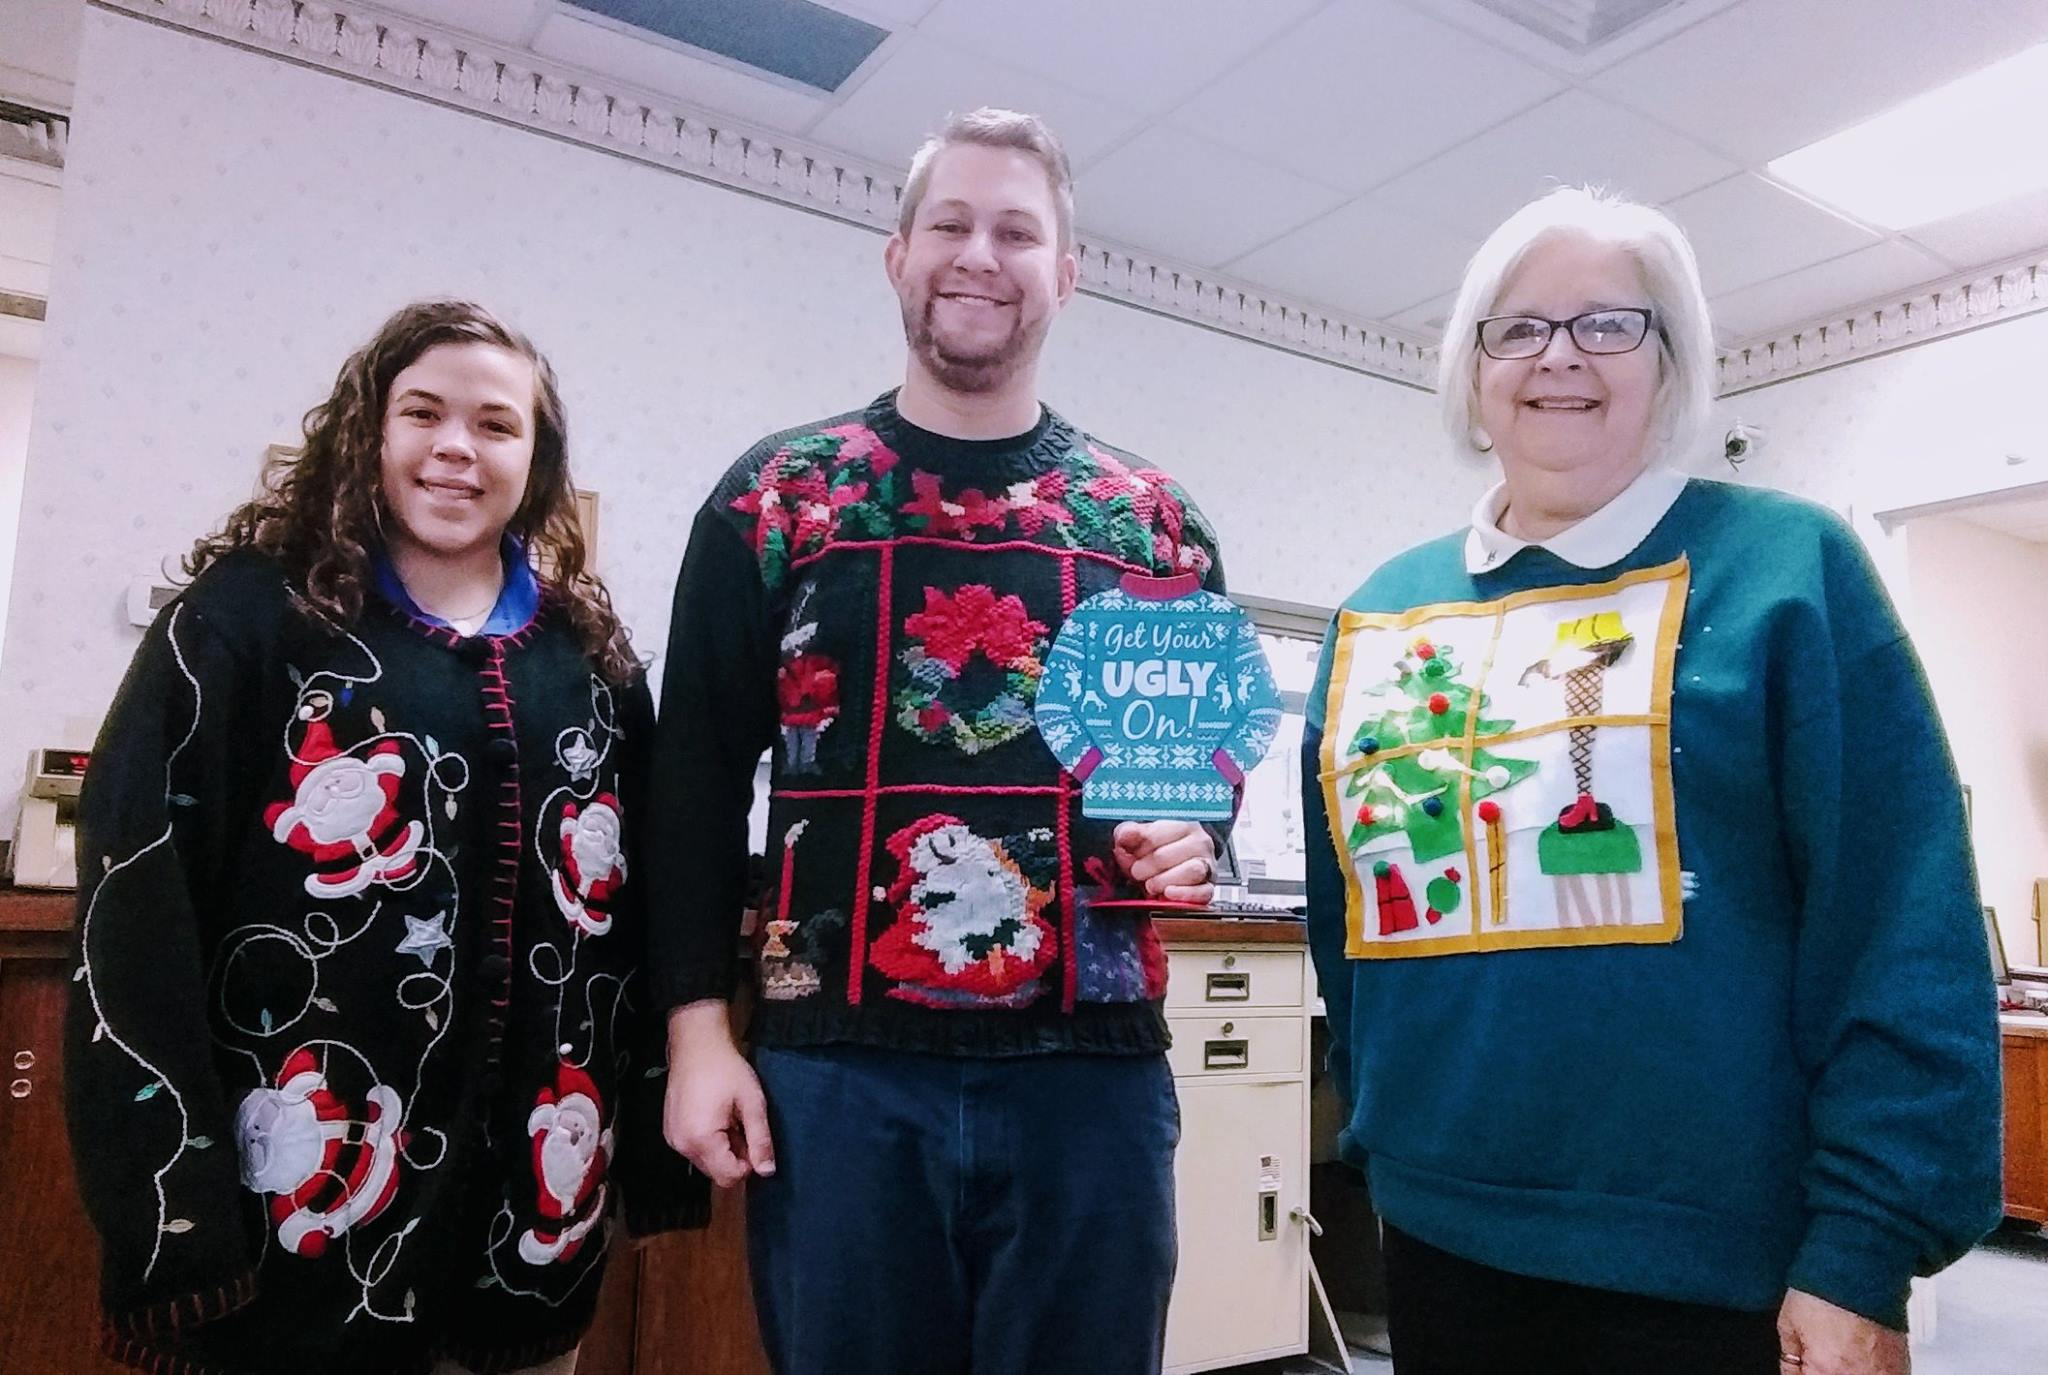 Whittle Ugly Christmas Sweater Day 2017